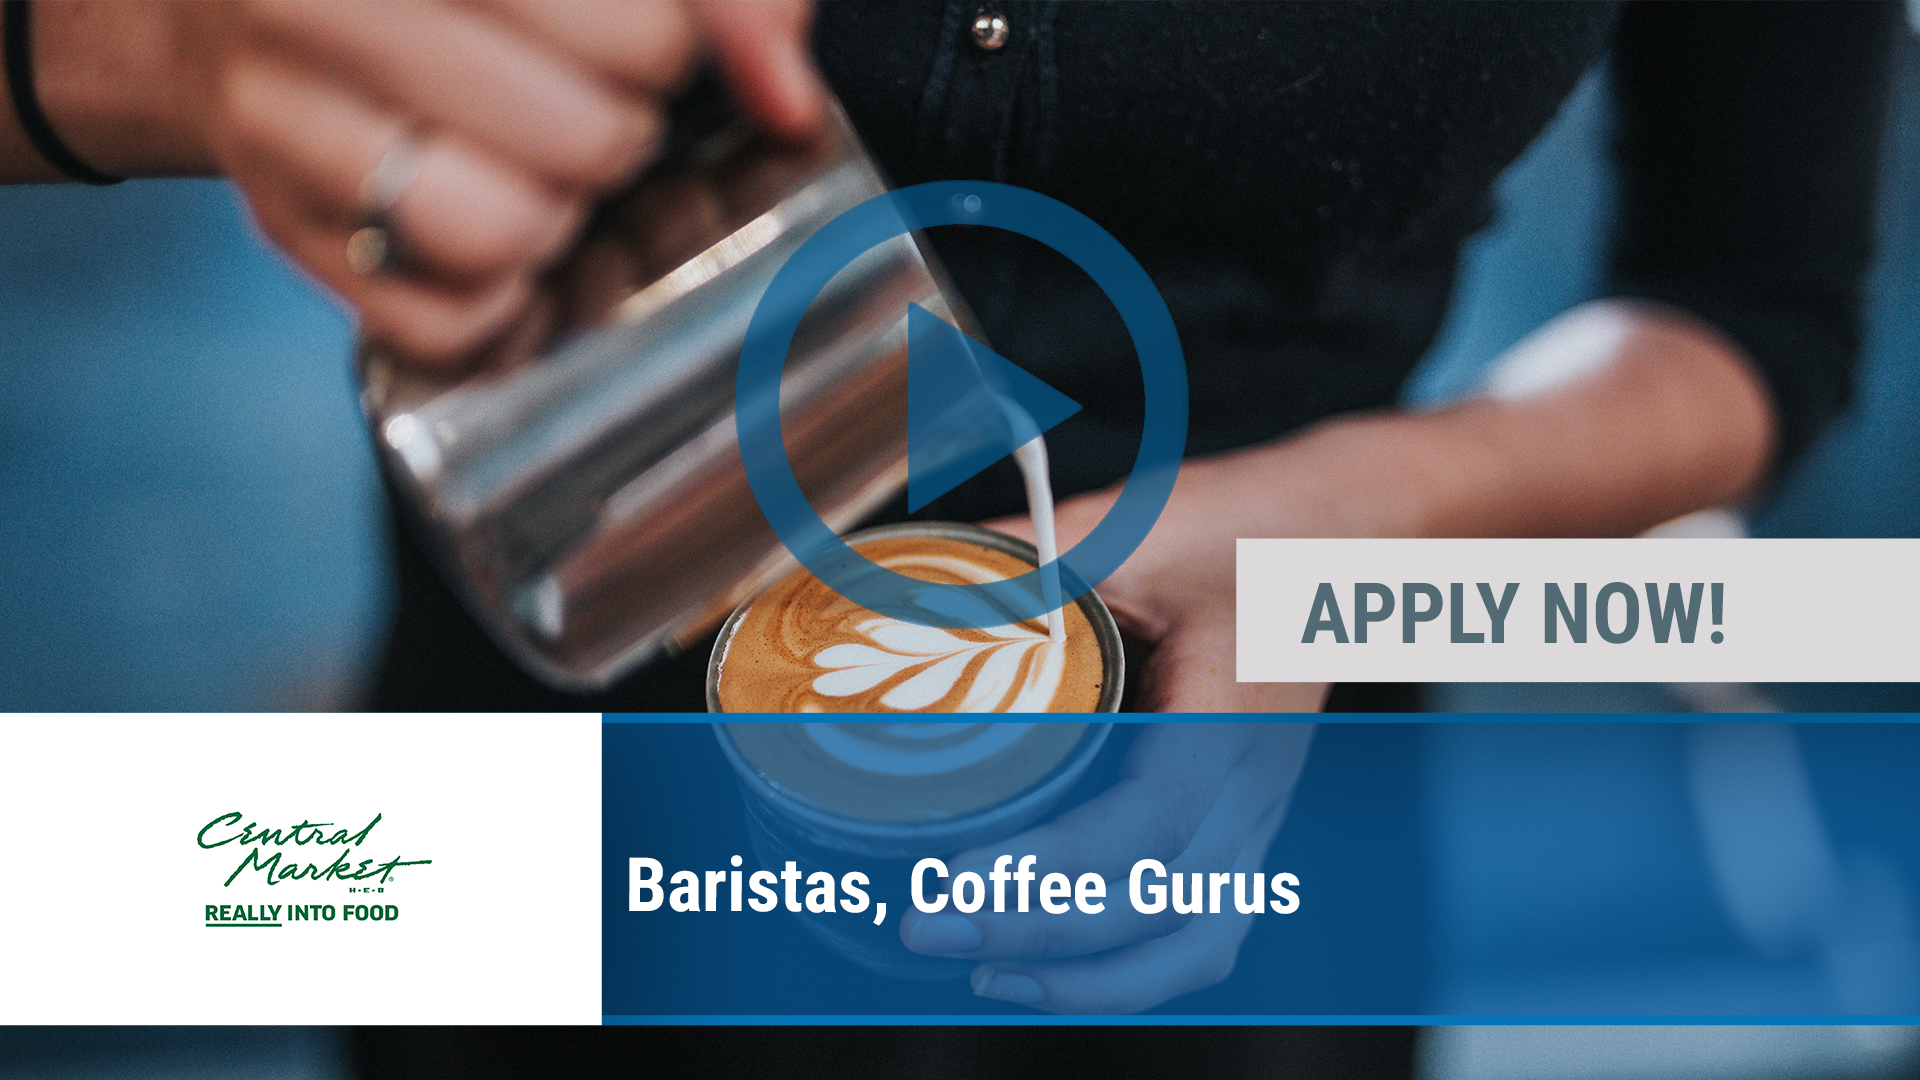 Watch our careers video for available job opening Baristas, Coffee Gurus in Dallas, TX